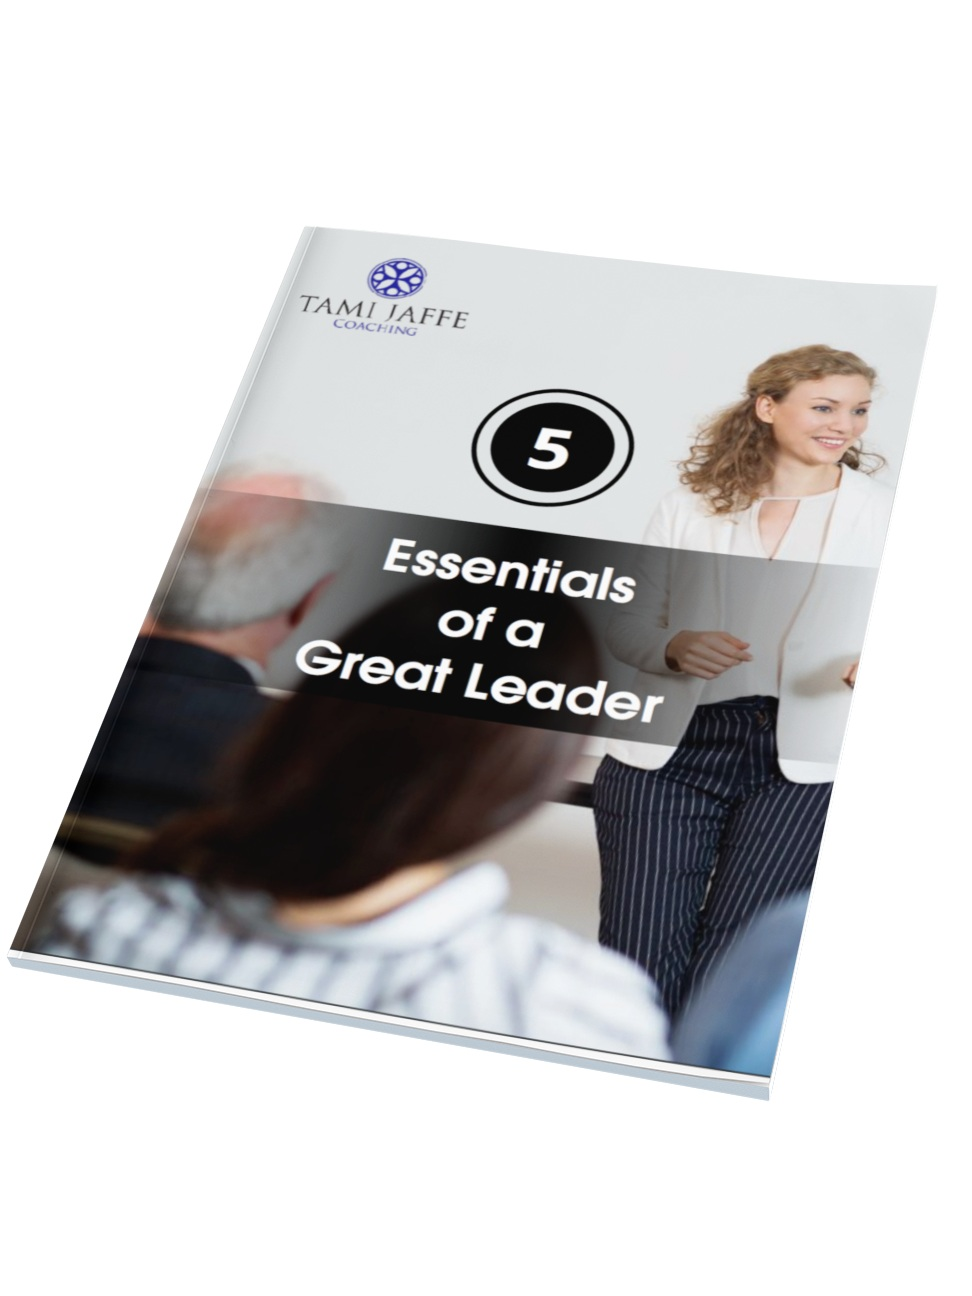 5 Essentials of a Great Leader - Get your FREE guide here to discover the essentials of being a great leader.